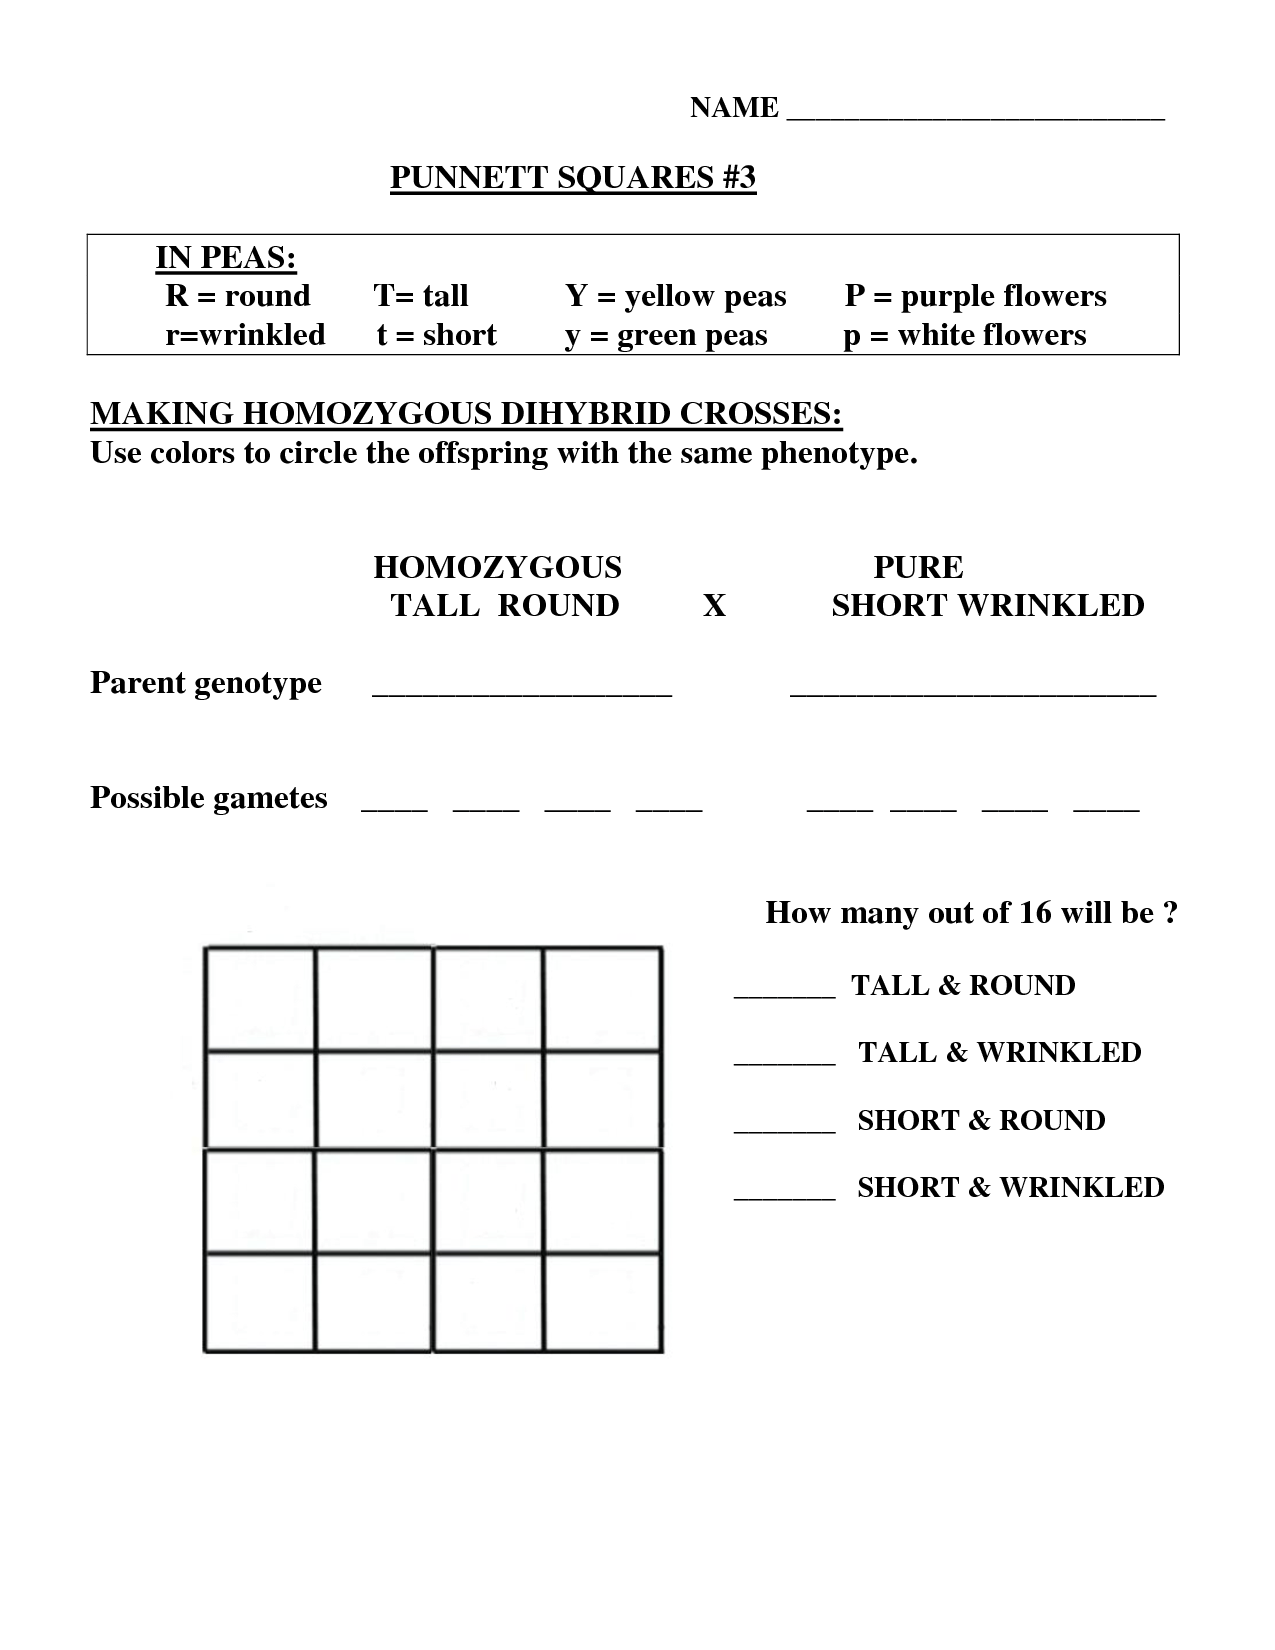 15 Best Images Of Dihybrid Cross Worksheet Answers